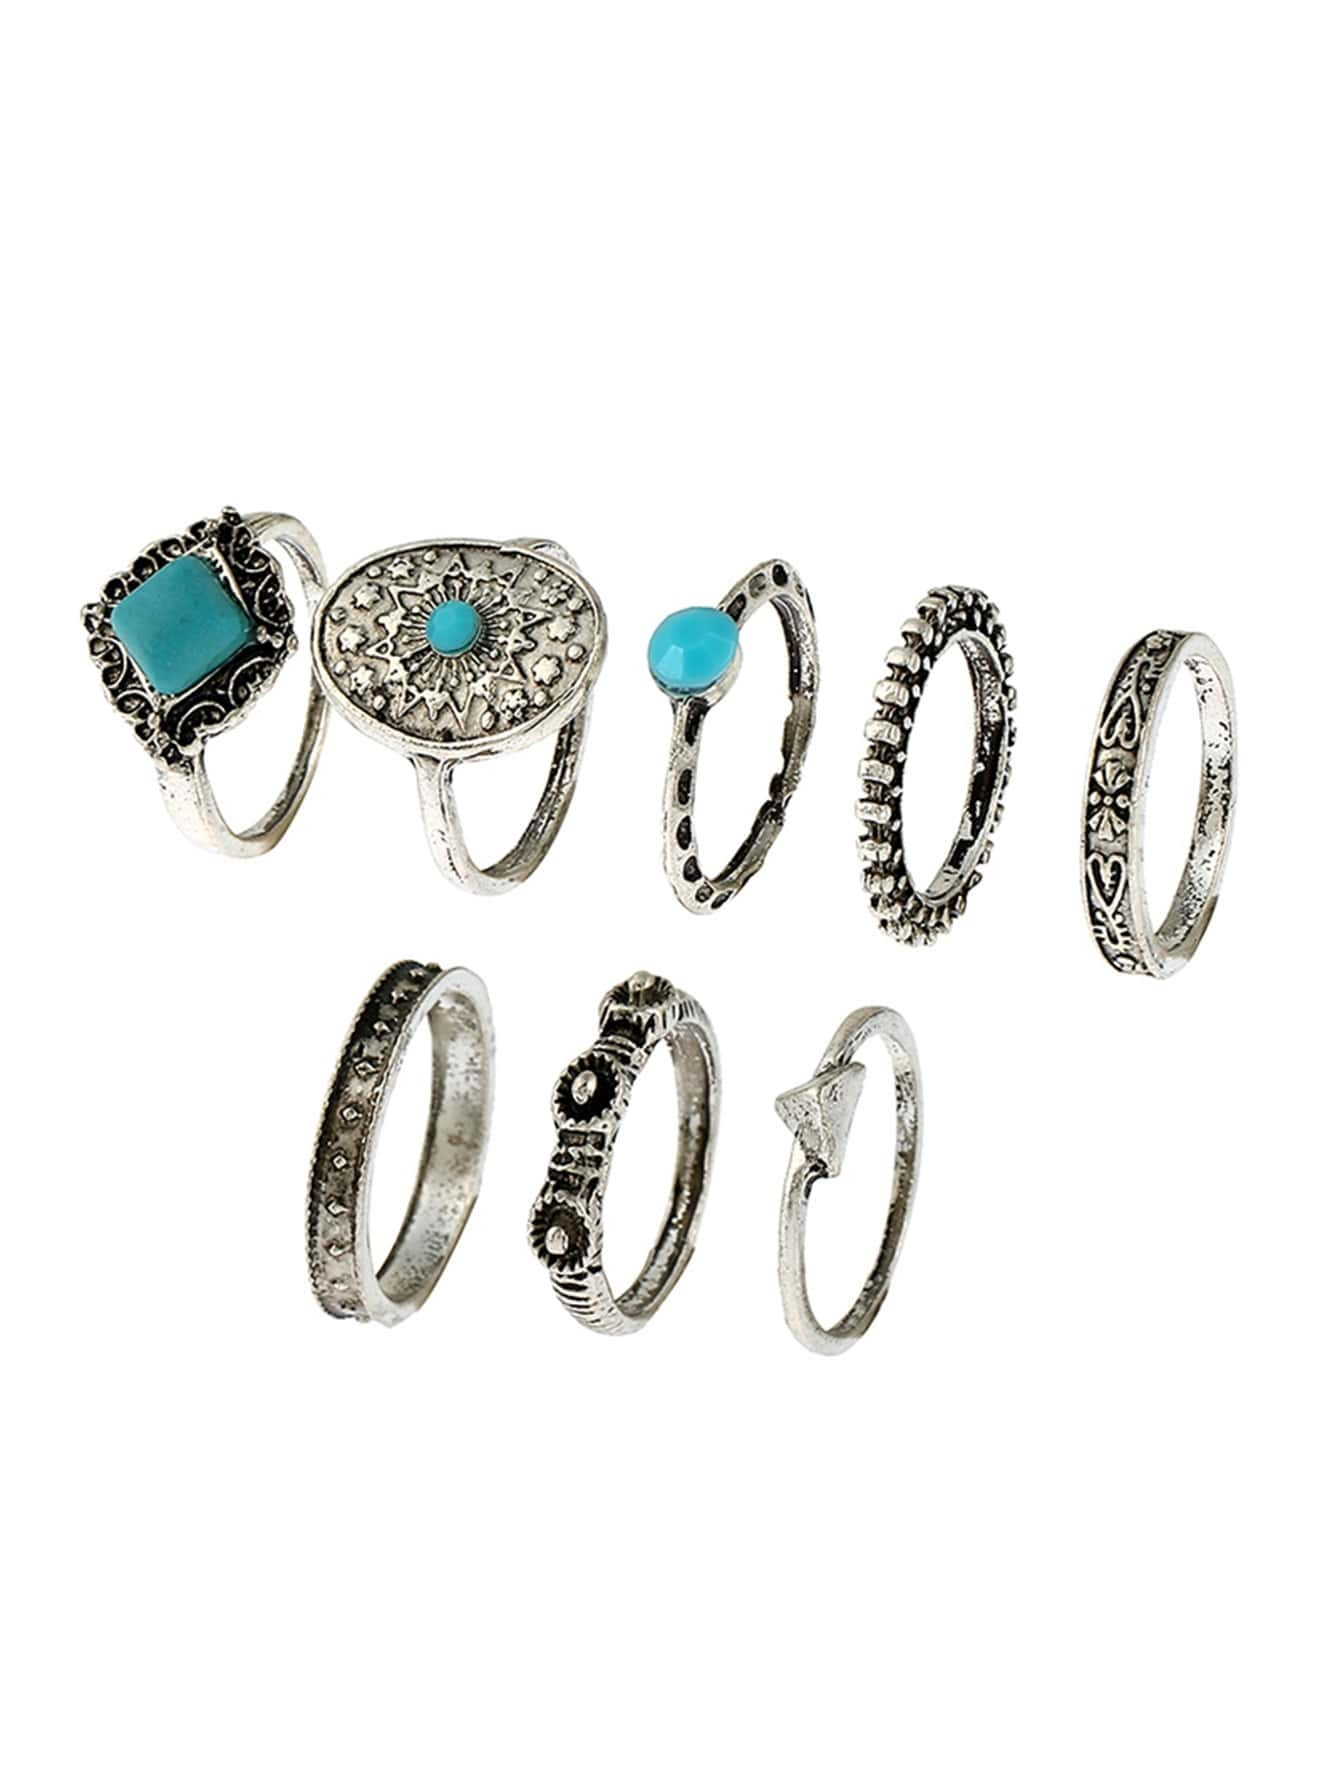 Turquoise Detail Engraved Ring Set 8pcs